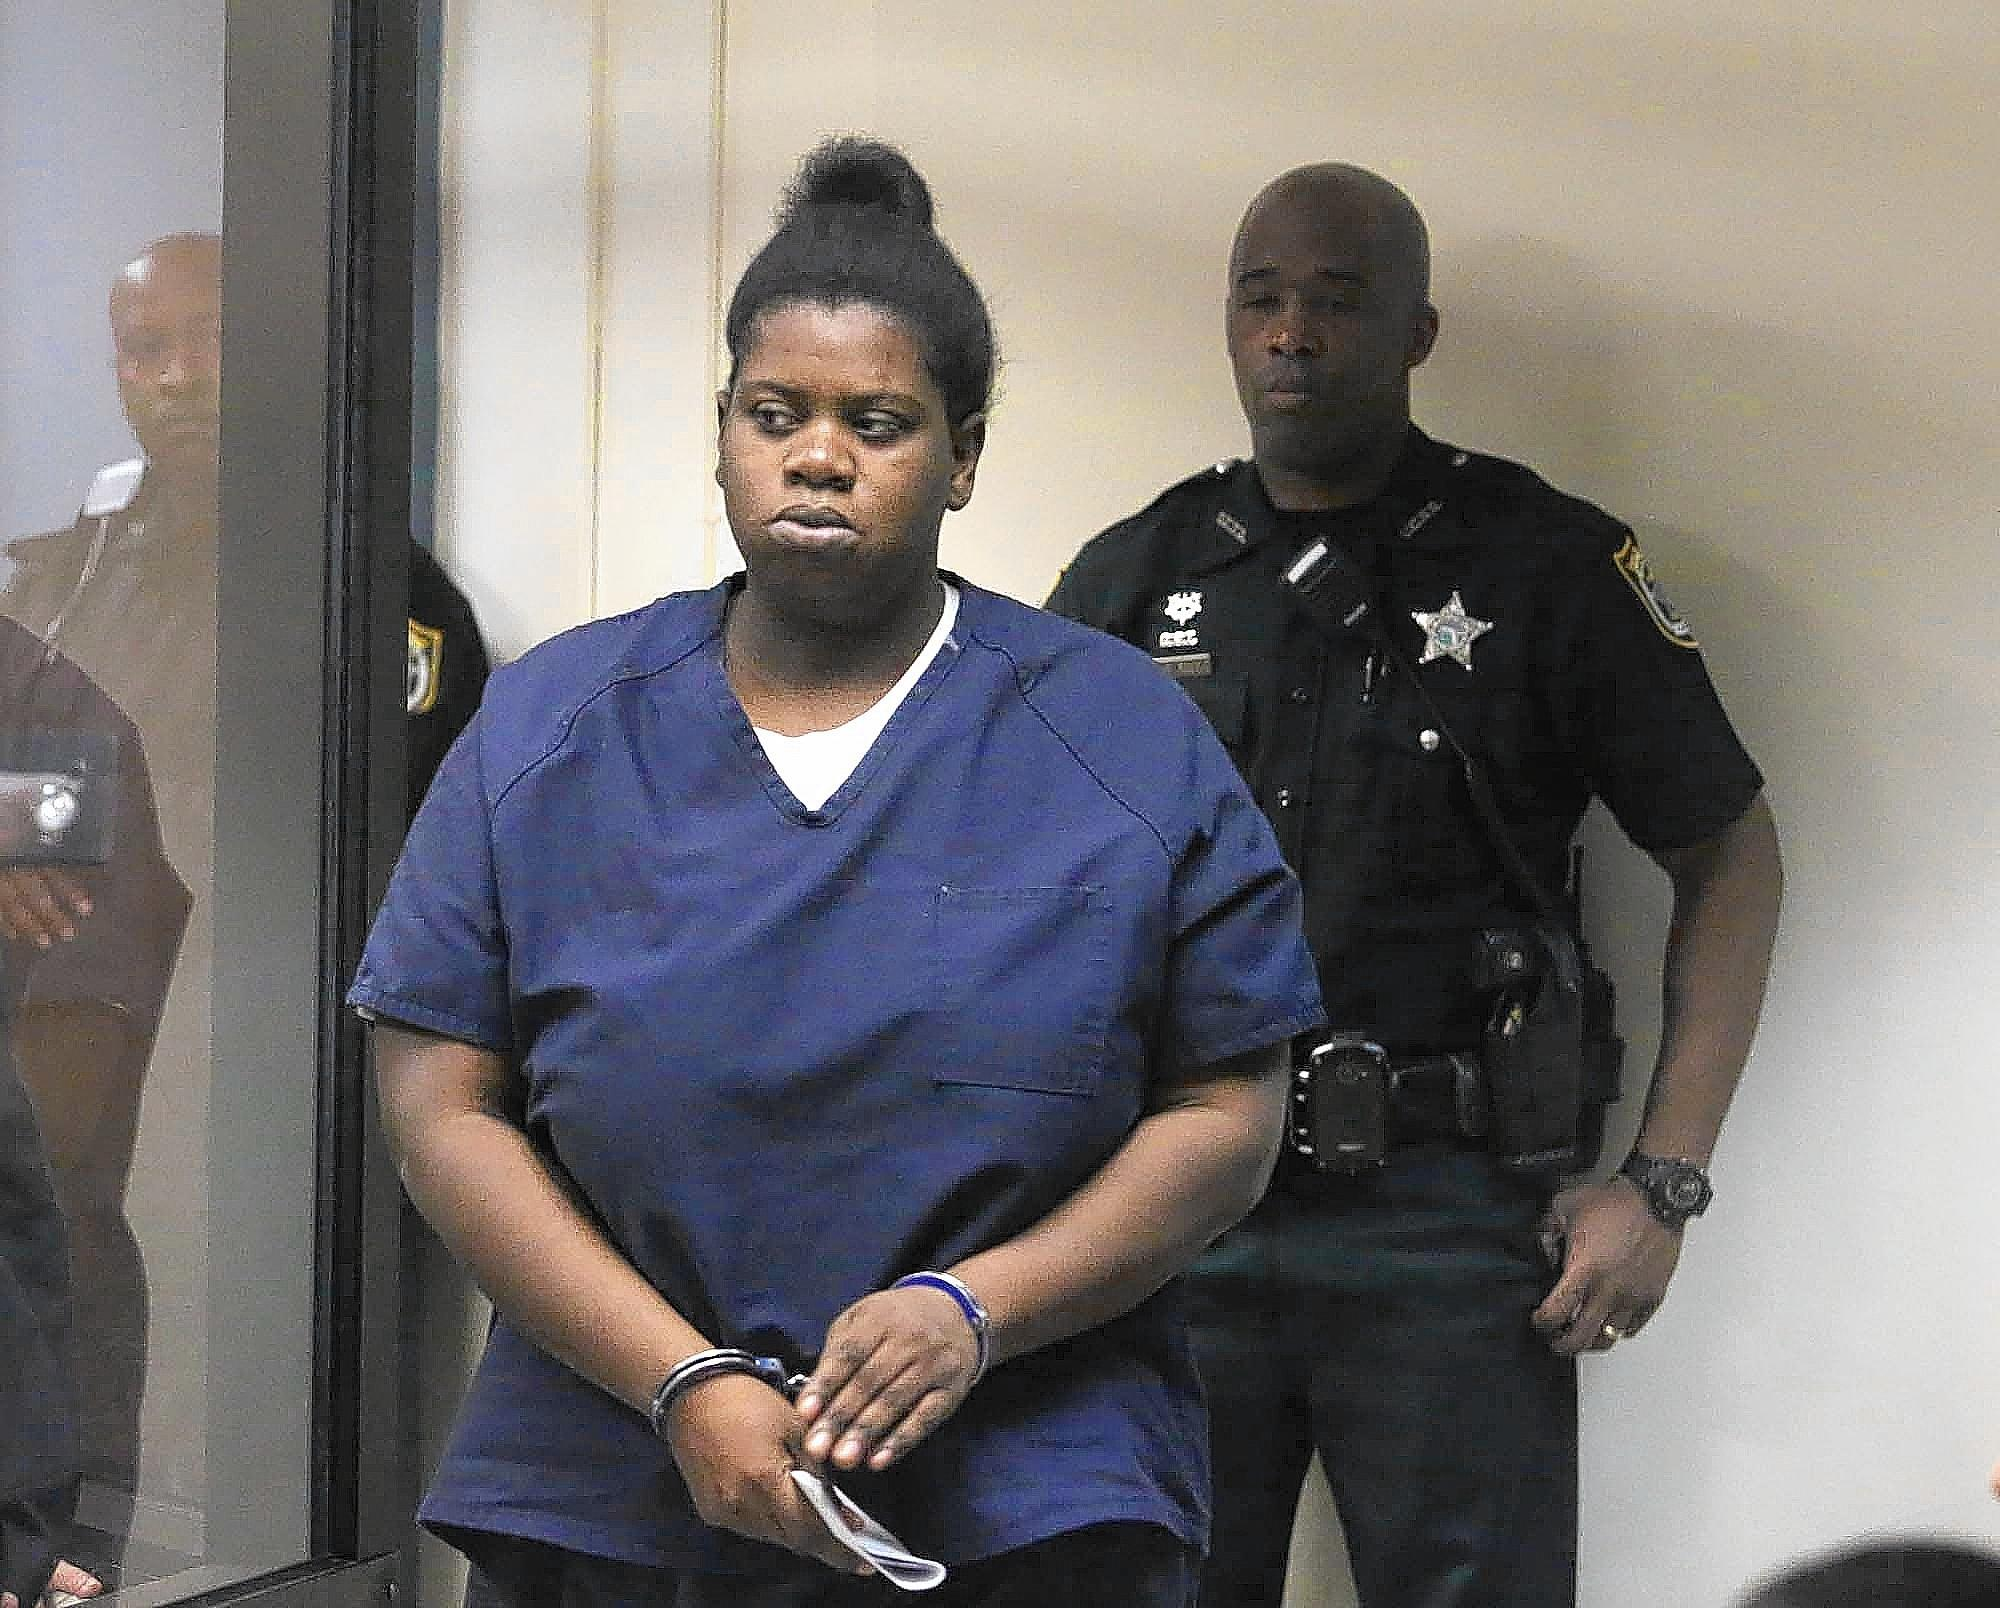 Rachel Fryer made her first appearance before a Seminole county judge from the Seminole County jail Thursday. She is charged in the murder of her child.